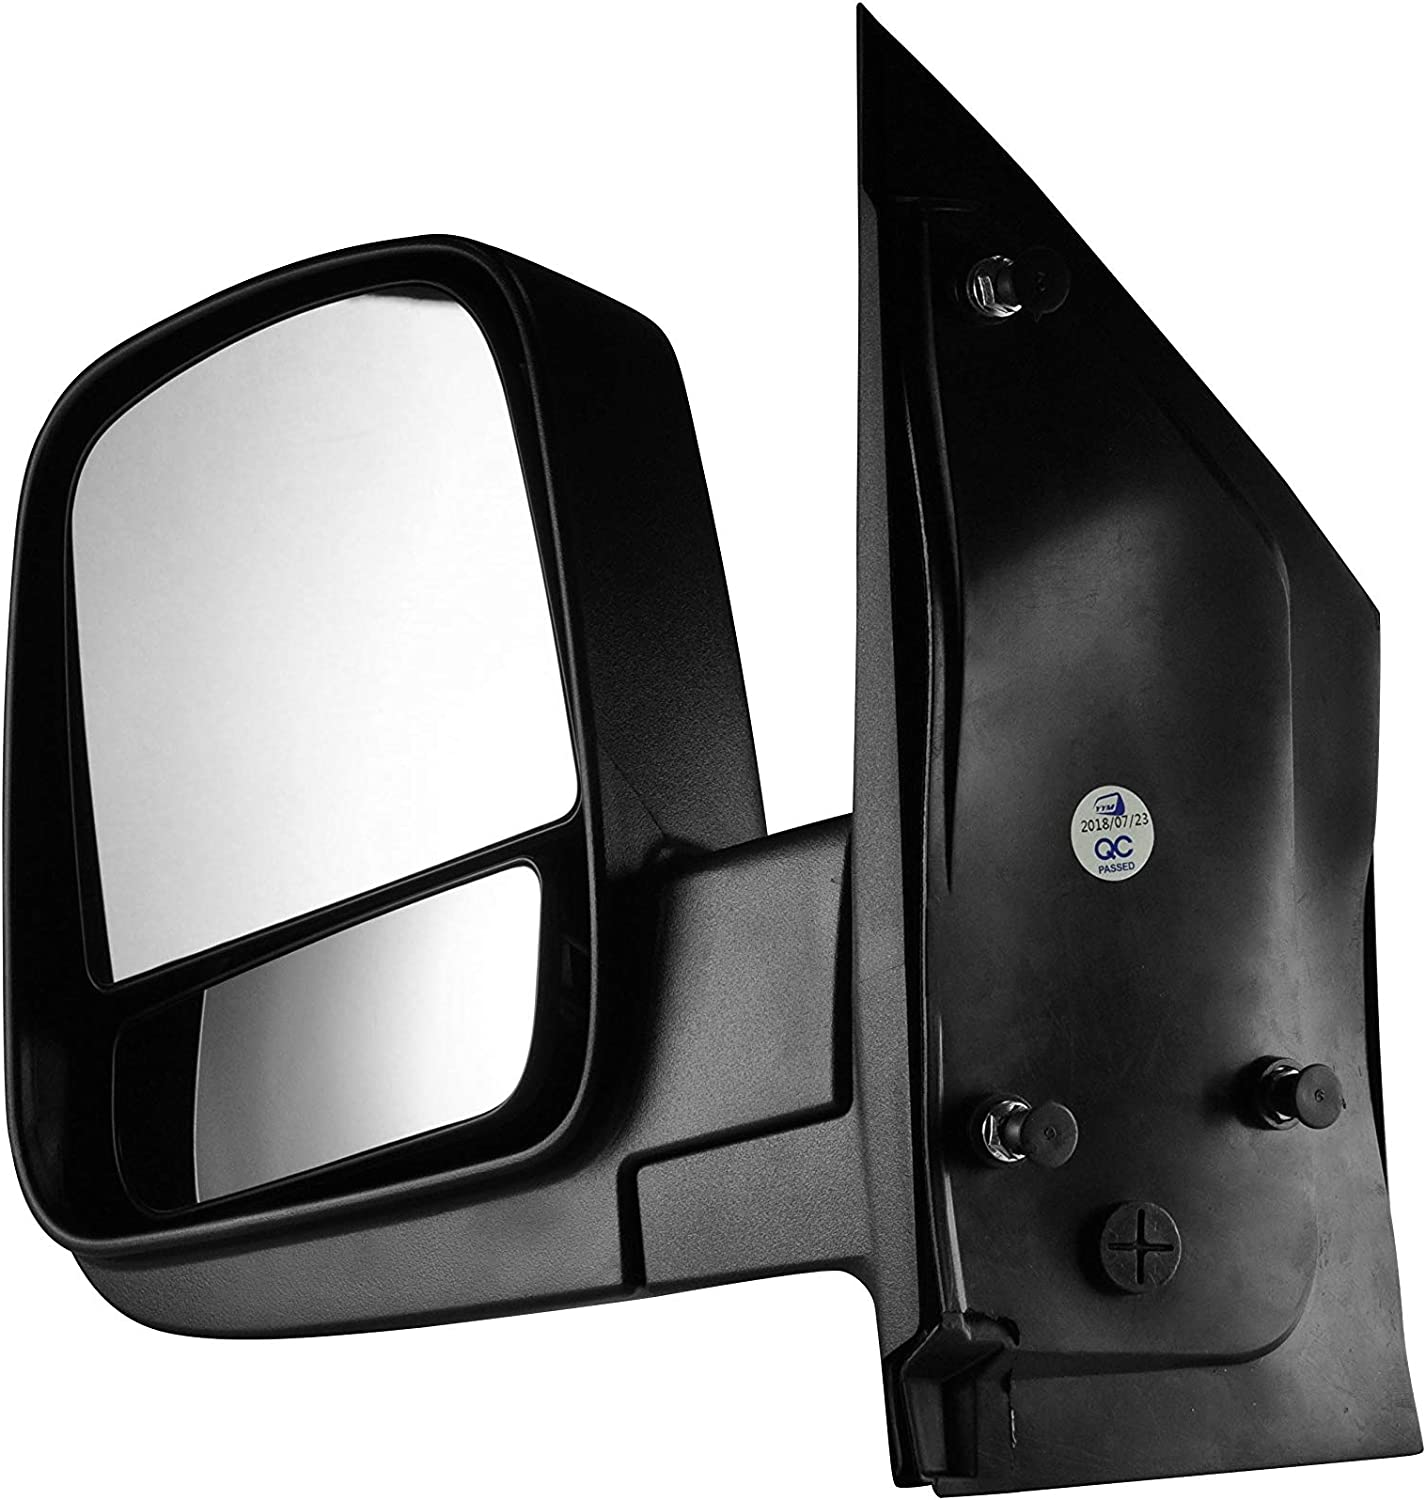 08-17 Chevy Express 2500 3500 Passenger Side Textured Side View Mirror for 08-14 Chevy Express /& GMC Savana 1500 GMC Savana 2500 3500 Dependable Direct